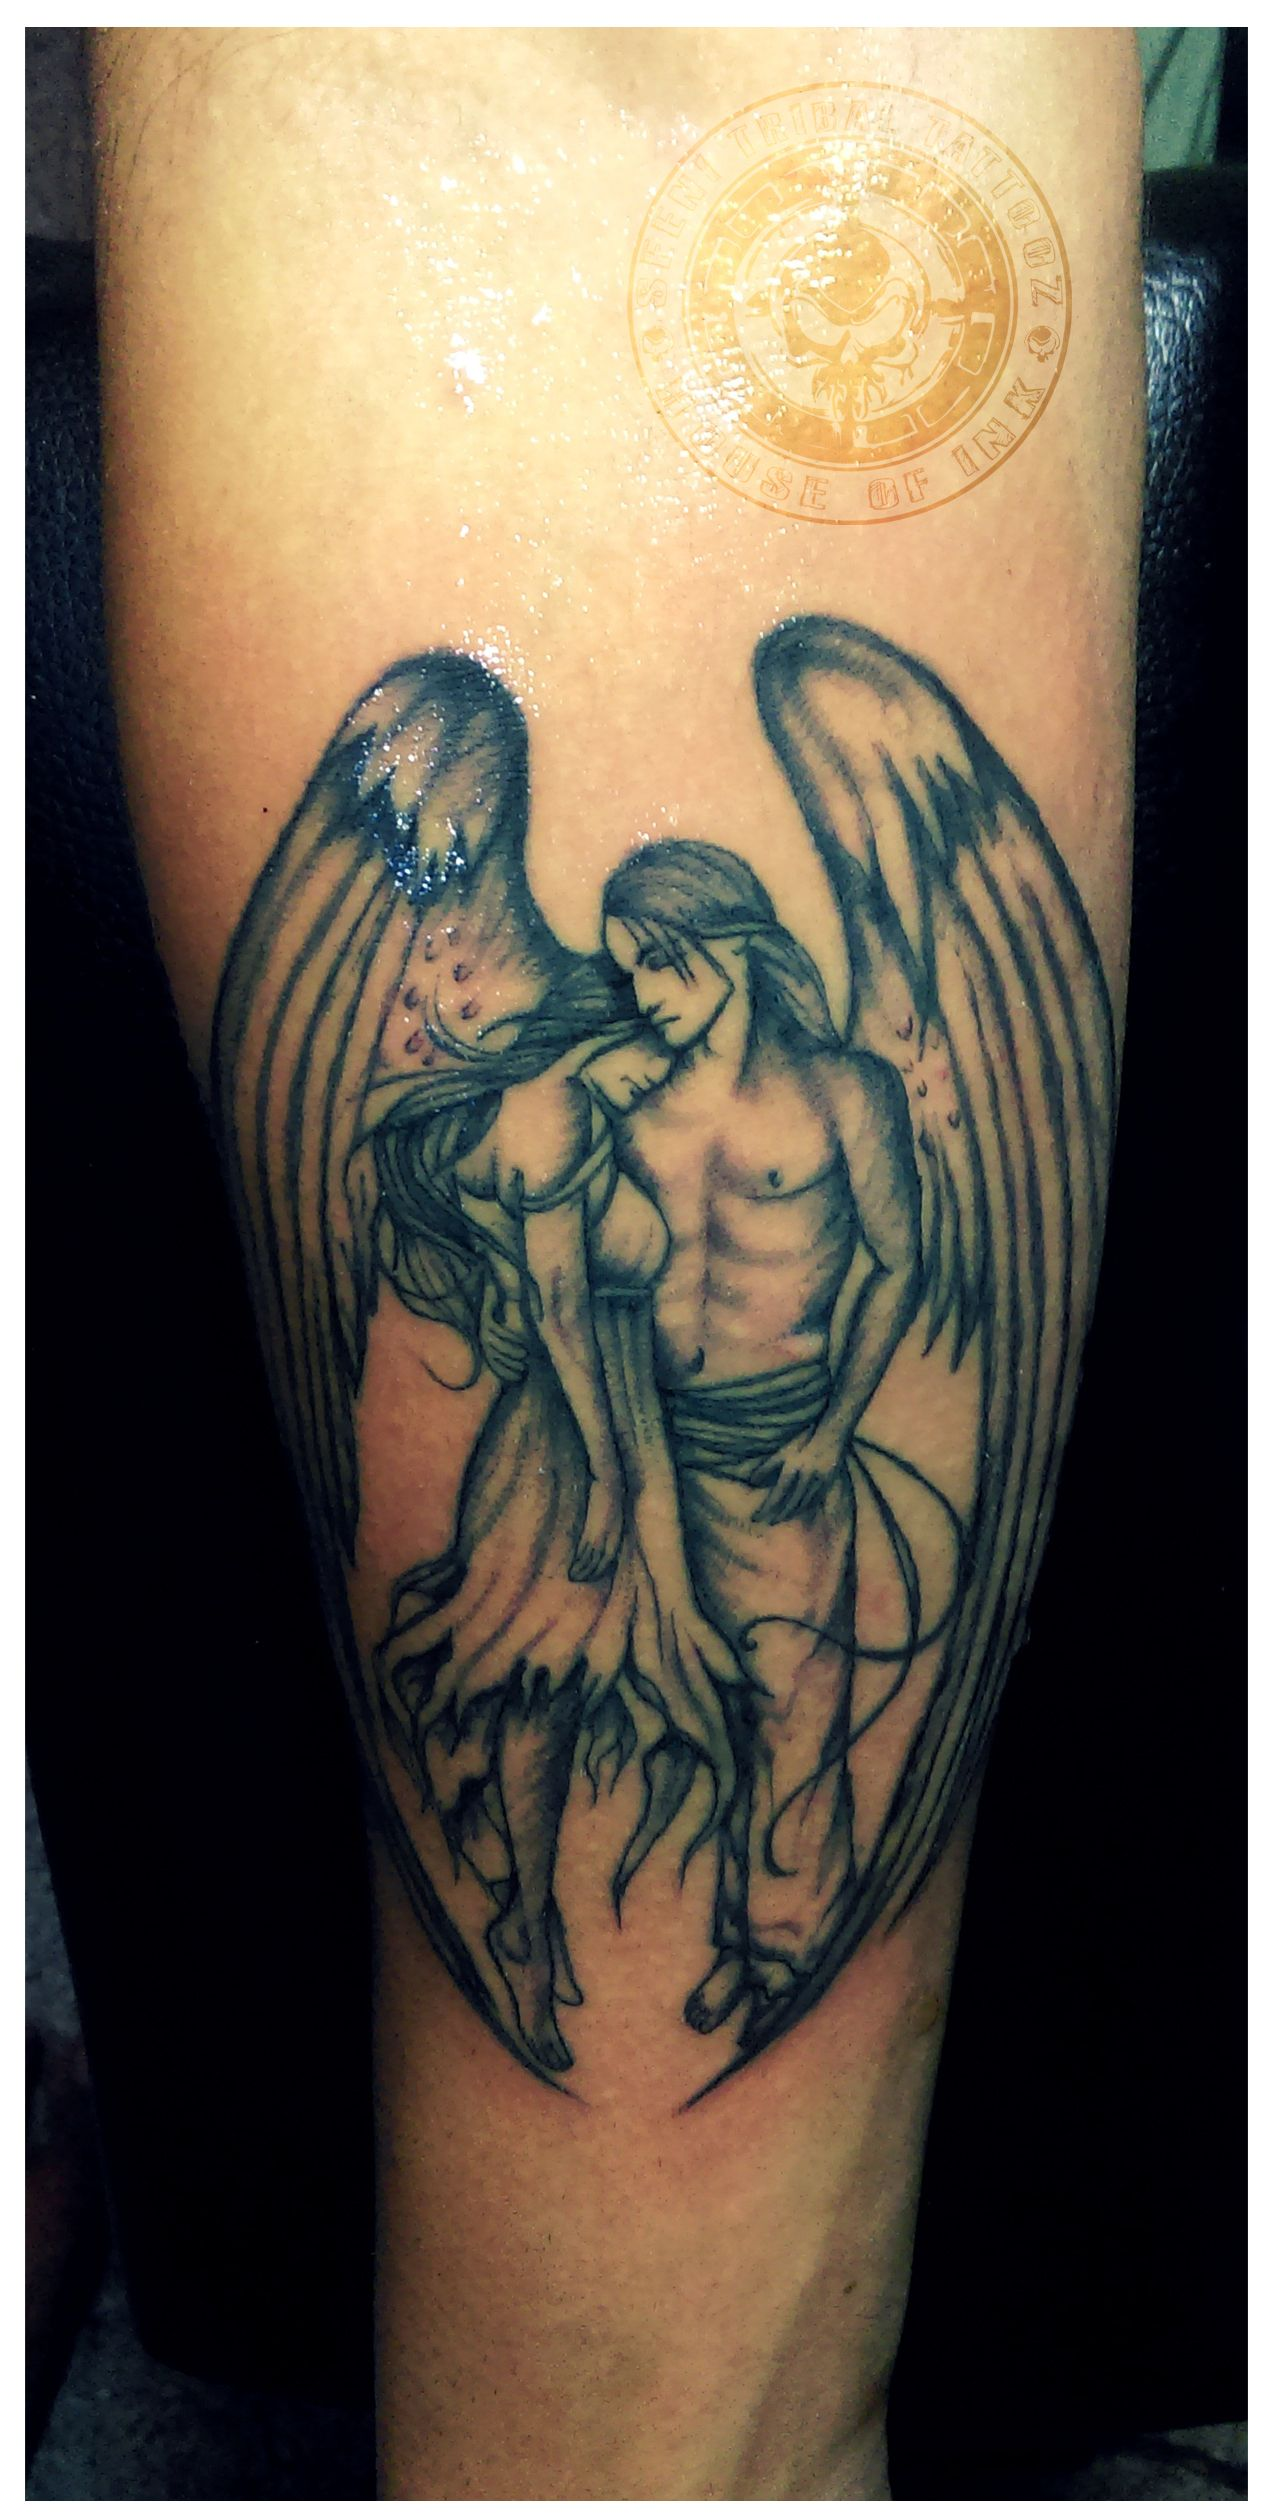 Pin By Seeni Tattooz On Boys Tattoo Tattoos Boy Tattoos